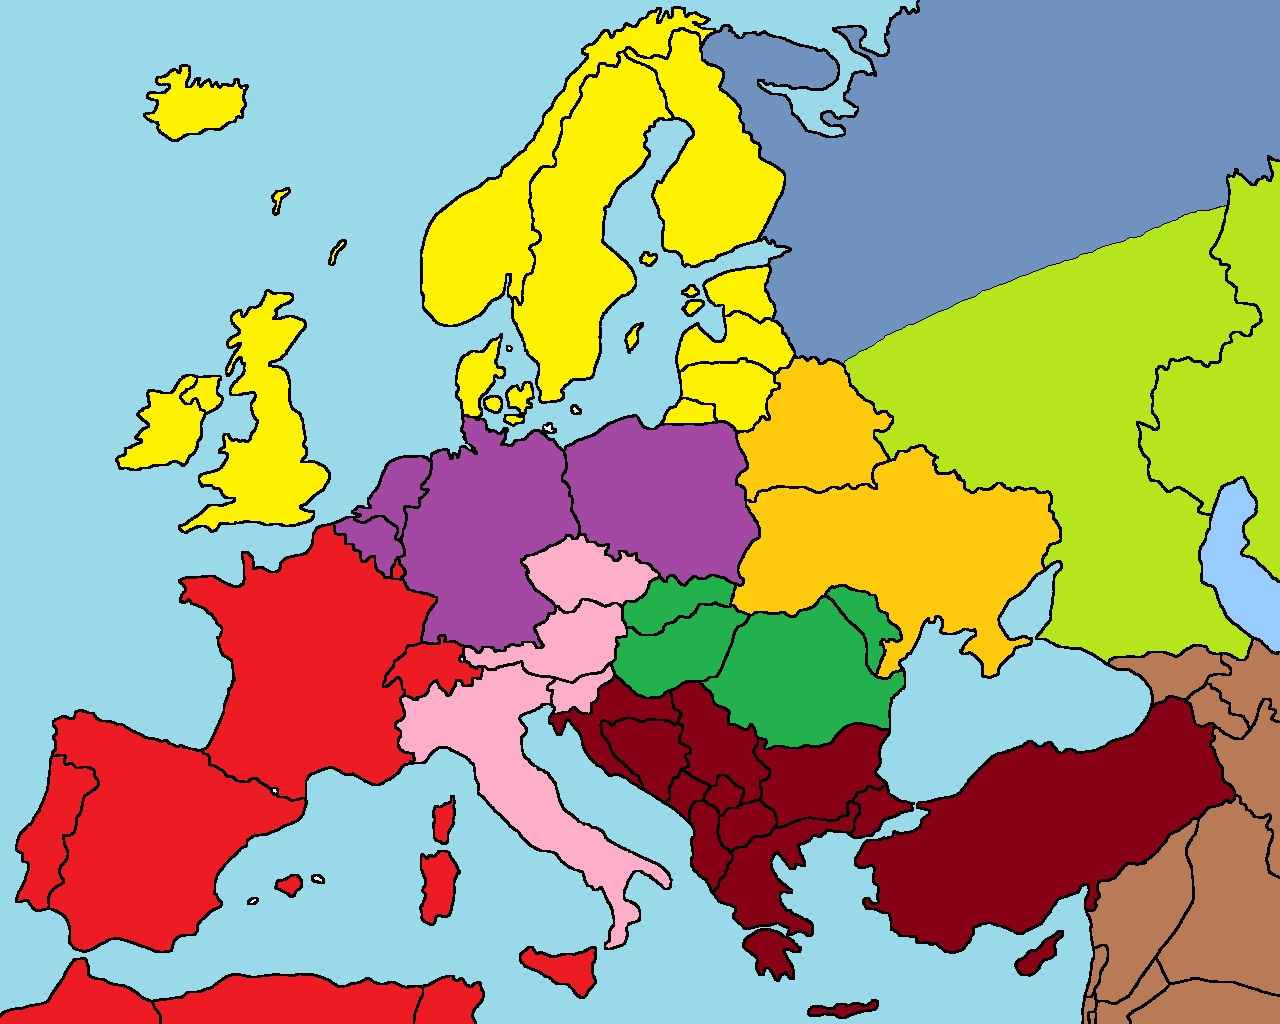 Image Blank Europe Mapjpg The Antarctic Alliance Wiki - Europe blank map